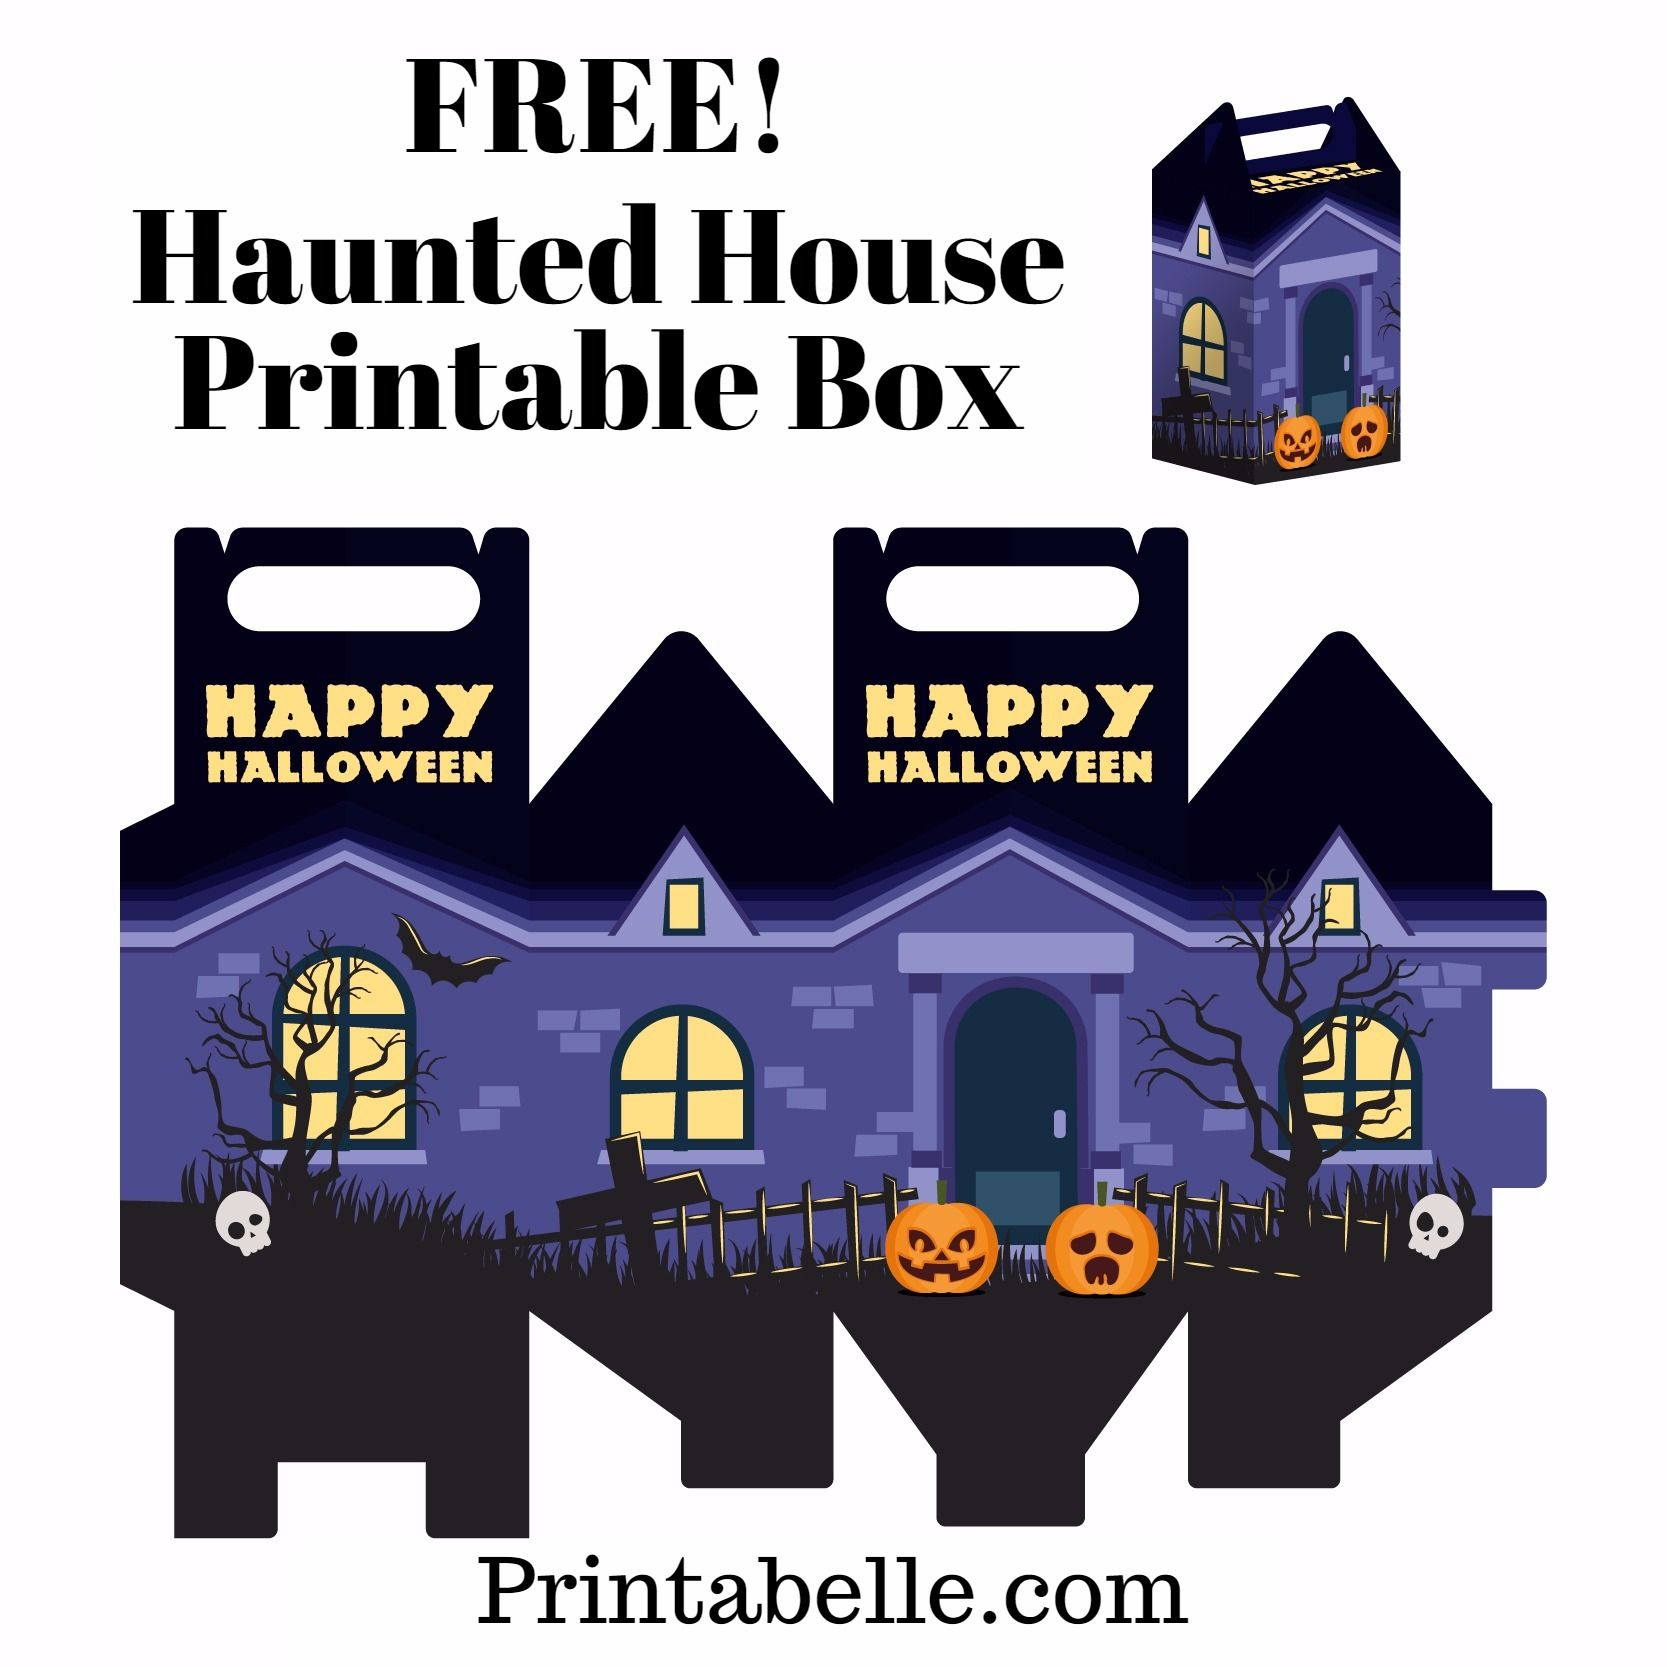 Happy Halloween 2020 Kids Going Up To House Free Haunted Halloween House Printable Box in 2020 | Halloween